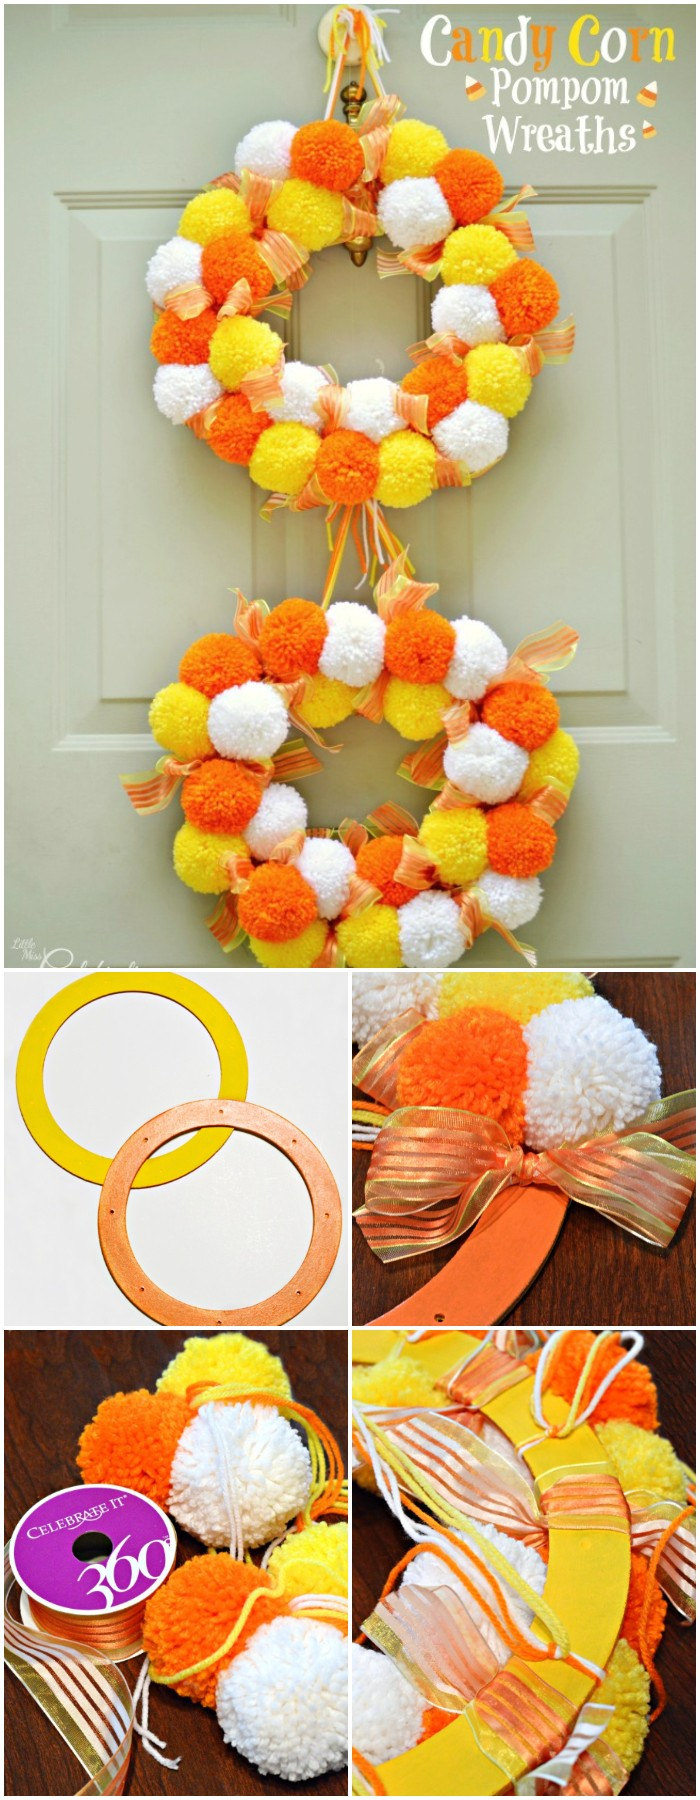 Candy Corn Pompom Wreaths